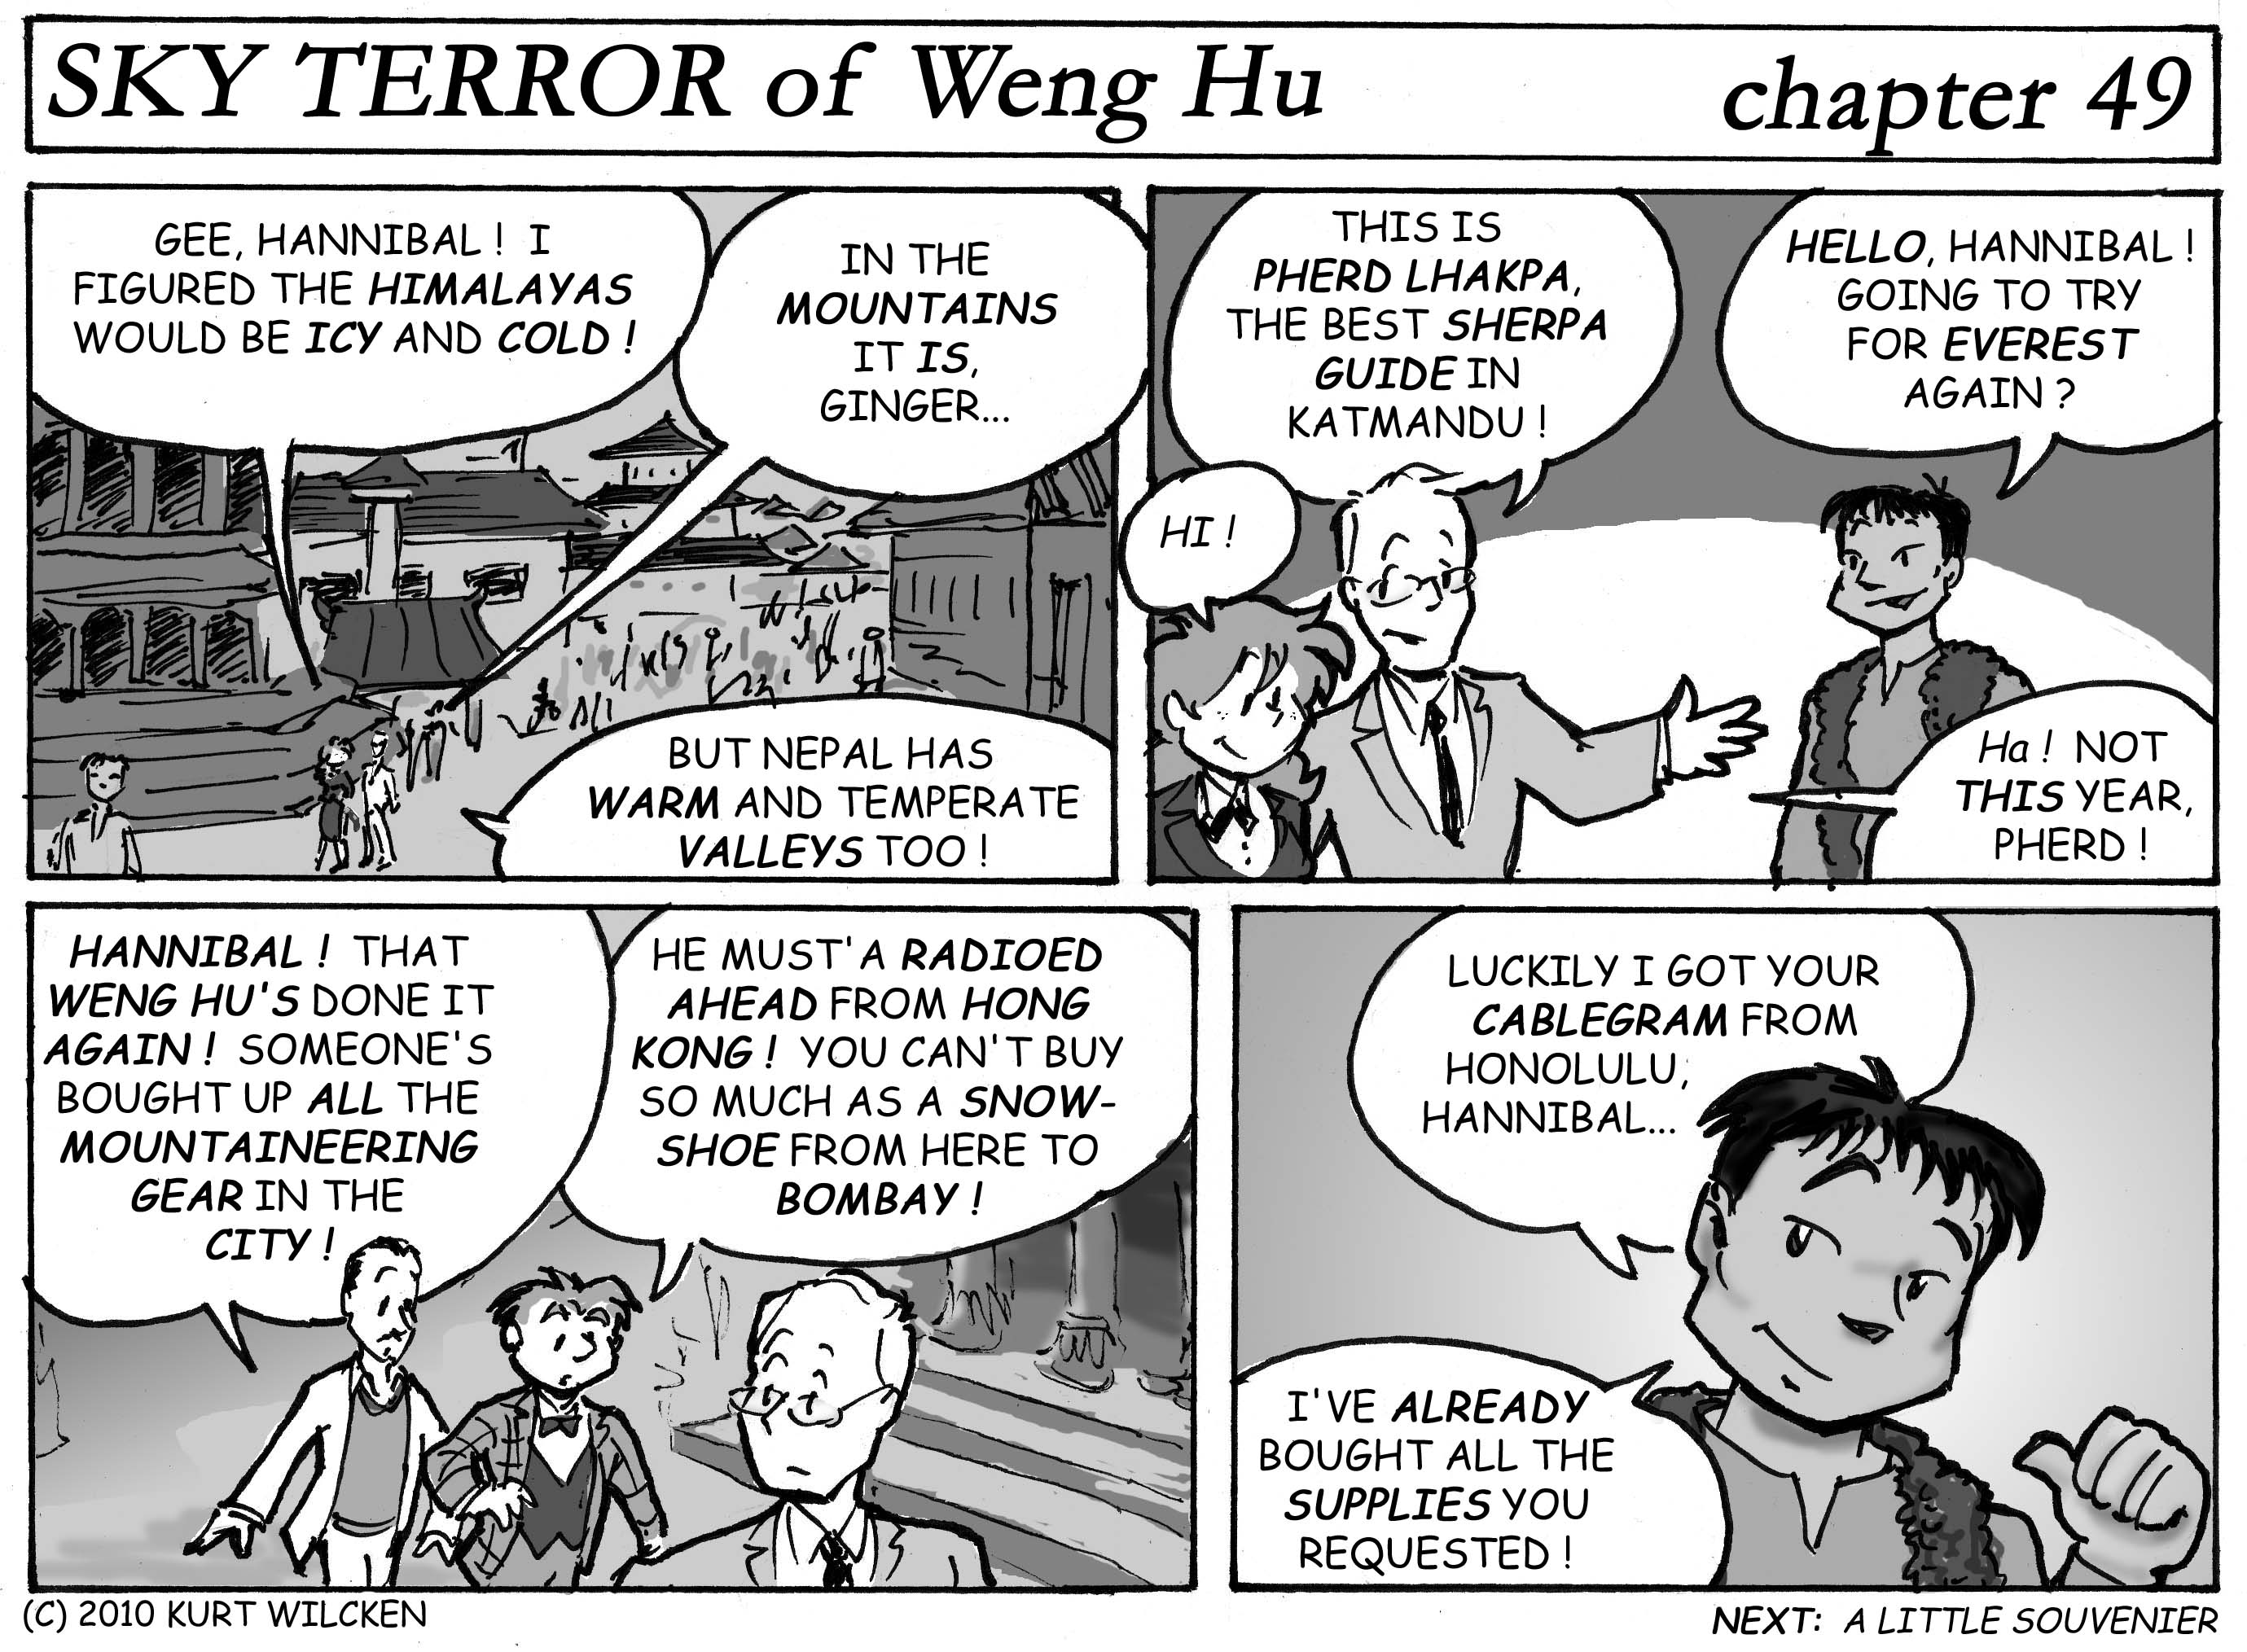 SKY TERROR of Weng Hu:  Chapter 49 — Helpful Sherpa Guide